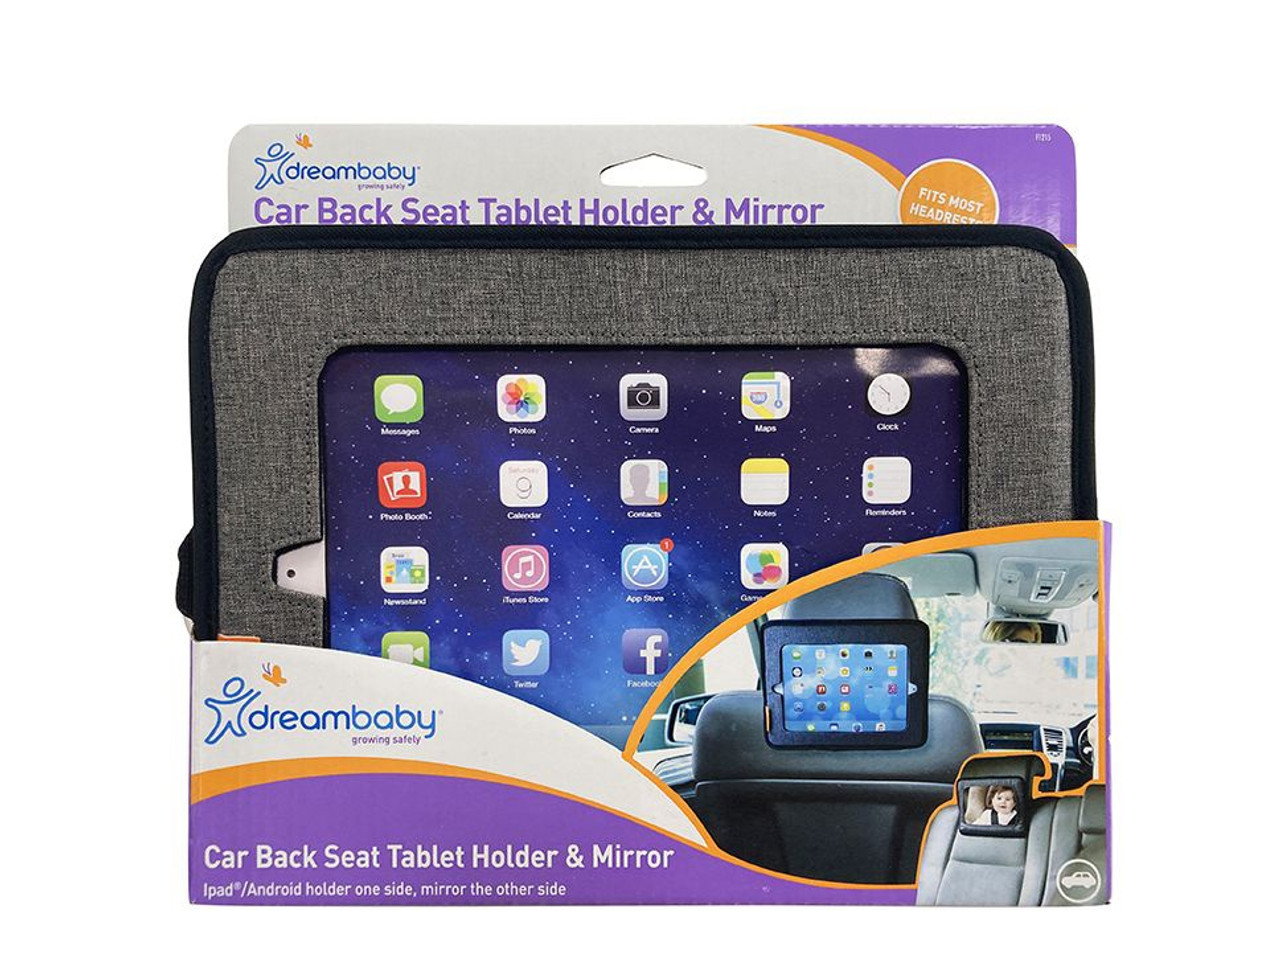 Dreambaby Car Back Seat Tablet Holder & Mirror at Baby Barn Discounts Help keep an eye on your children in the car or help keep them occupied with the Dreambaby rearward mirror & tablet holder.